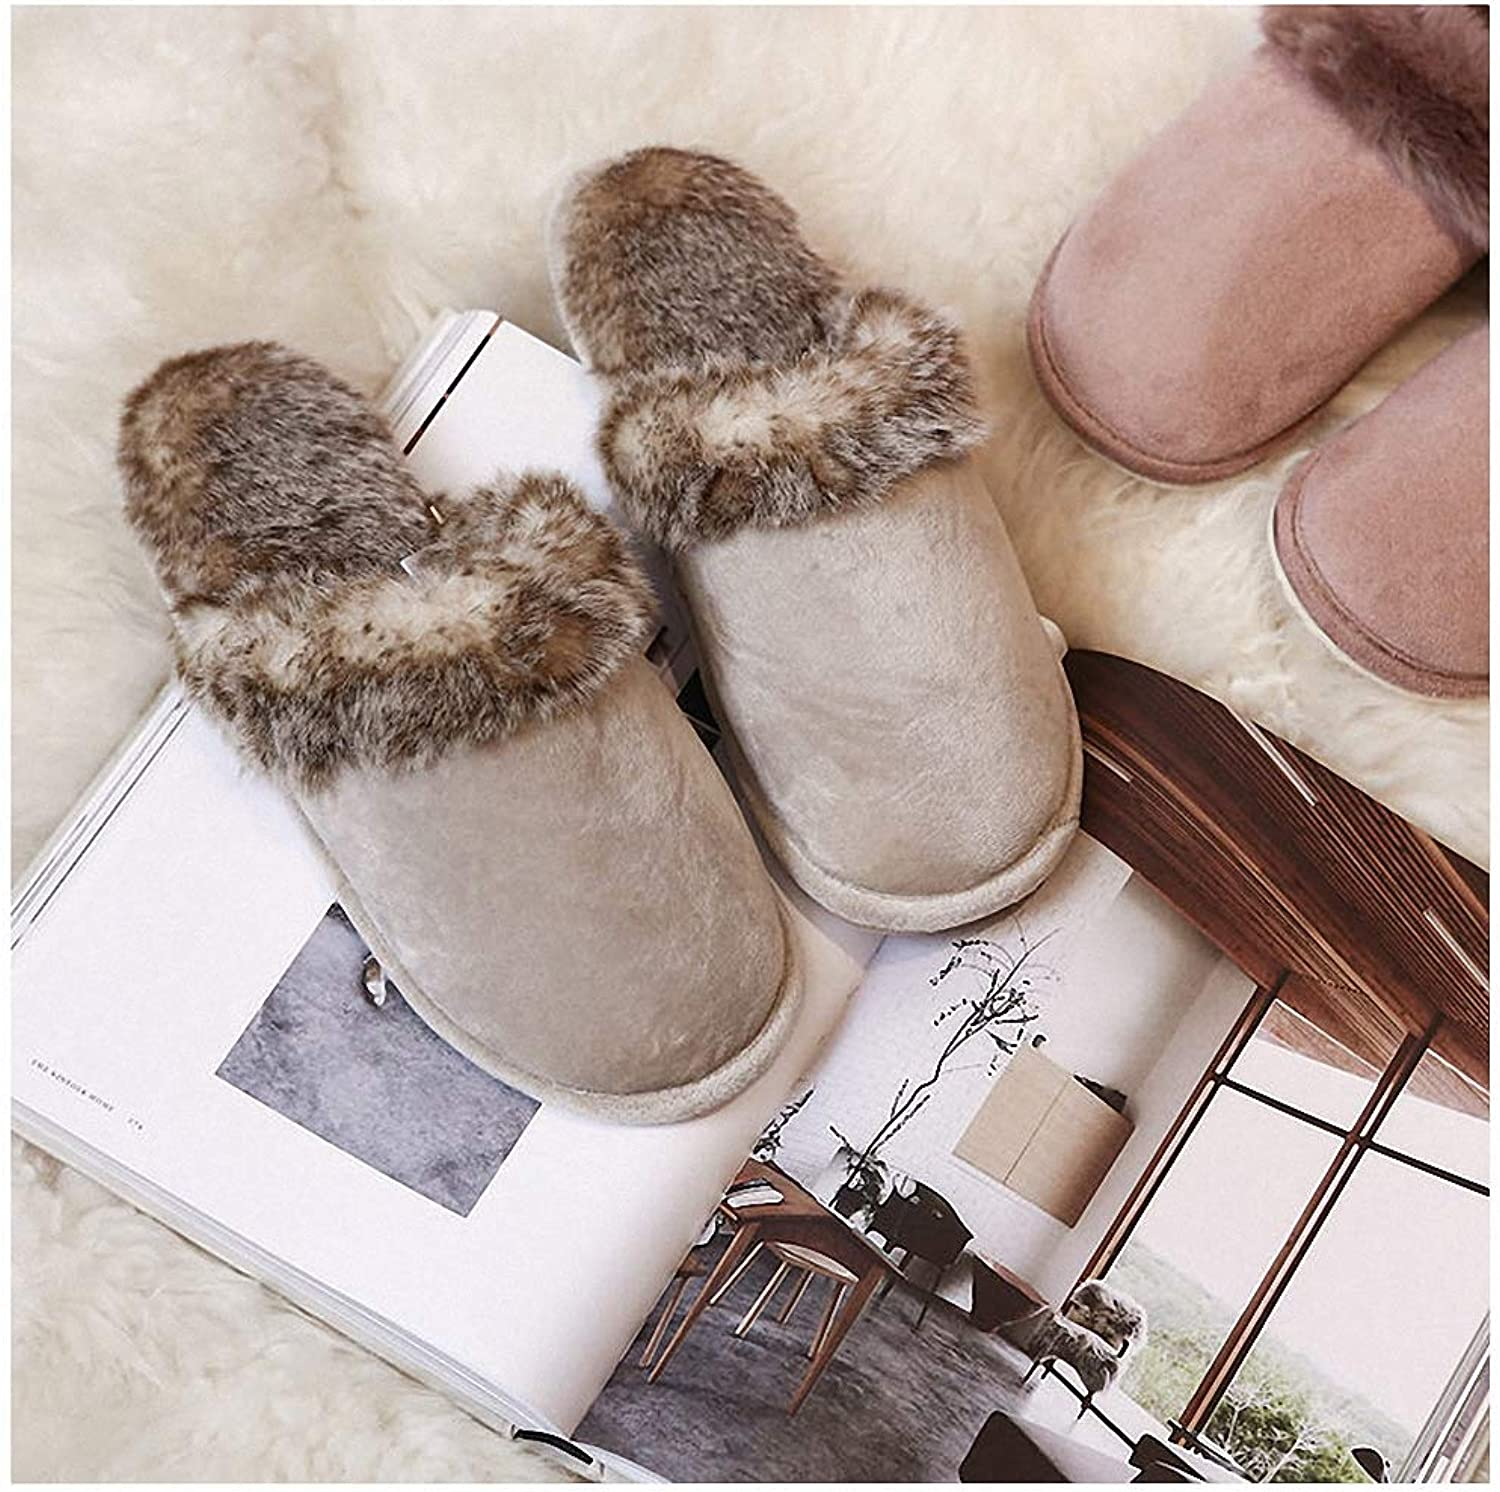 Womens Slippers Large Size Couples House Slippers for Men Women Winter Warm Faux Suede Fur Indoor Furry Home shoes Leopard Print Bedroom Slipper Beige 14